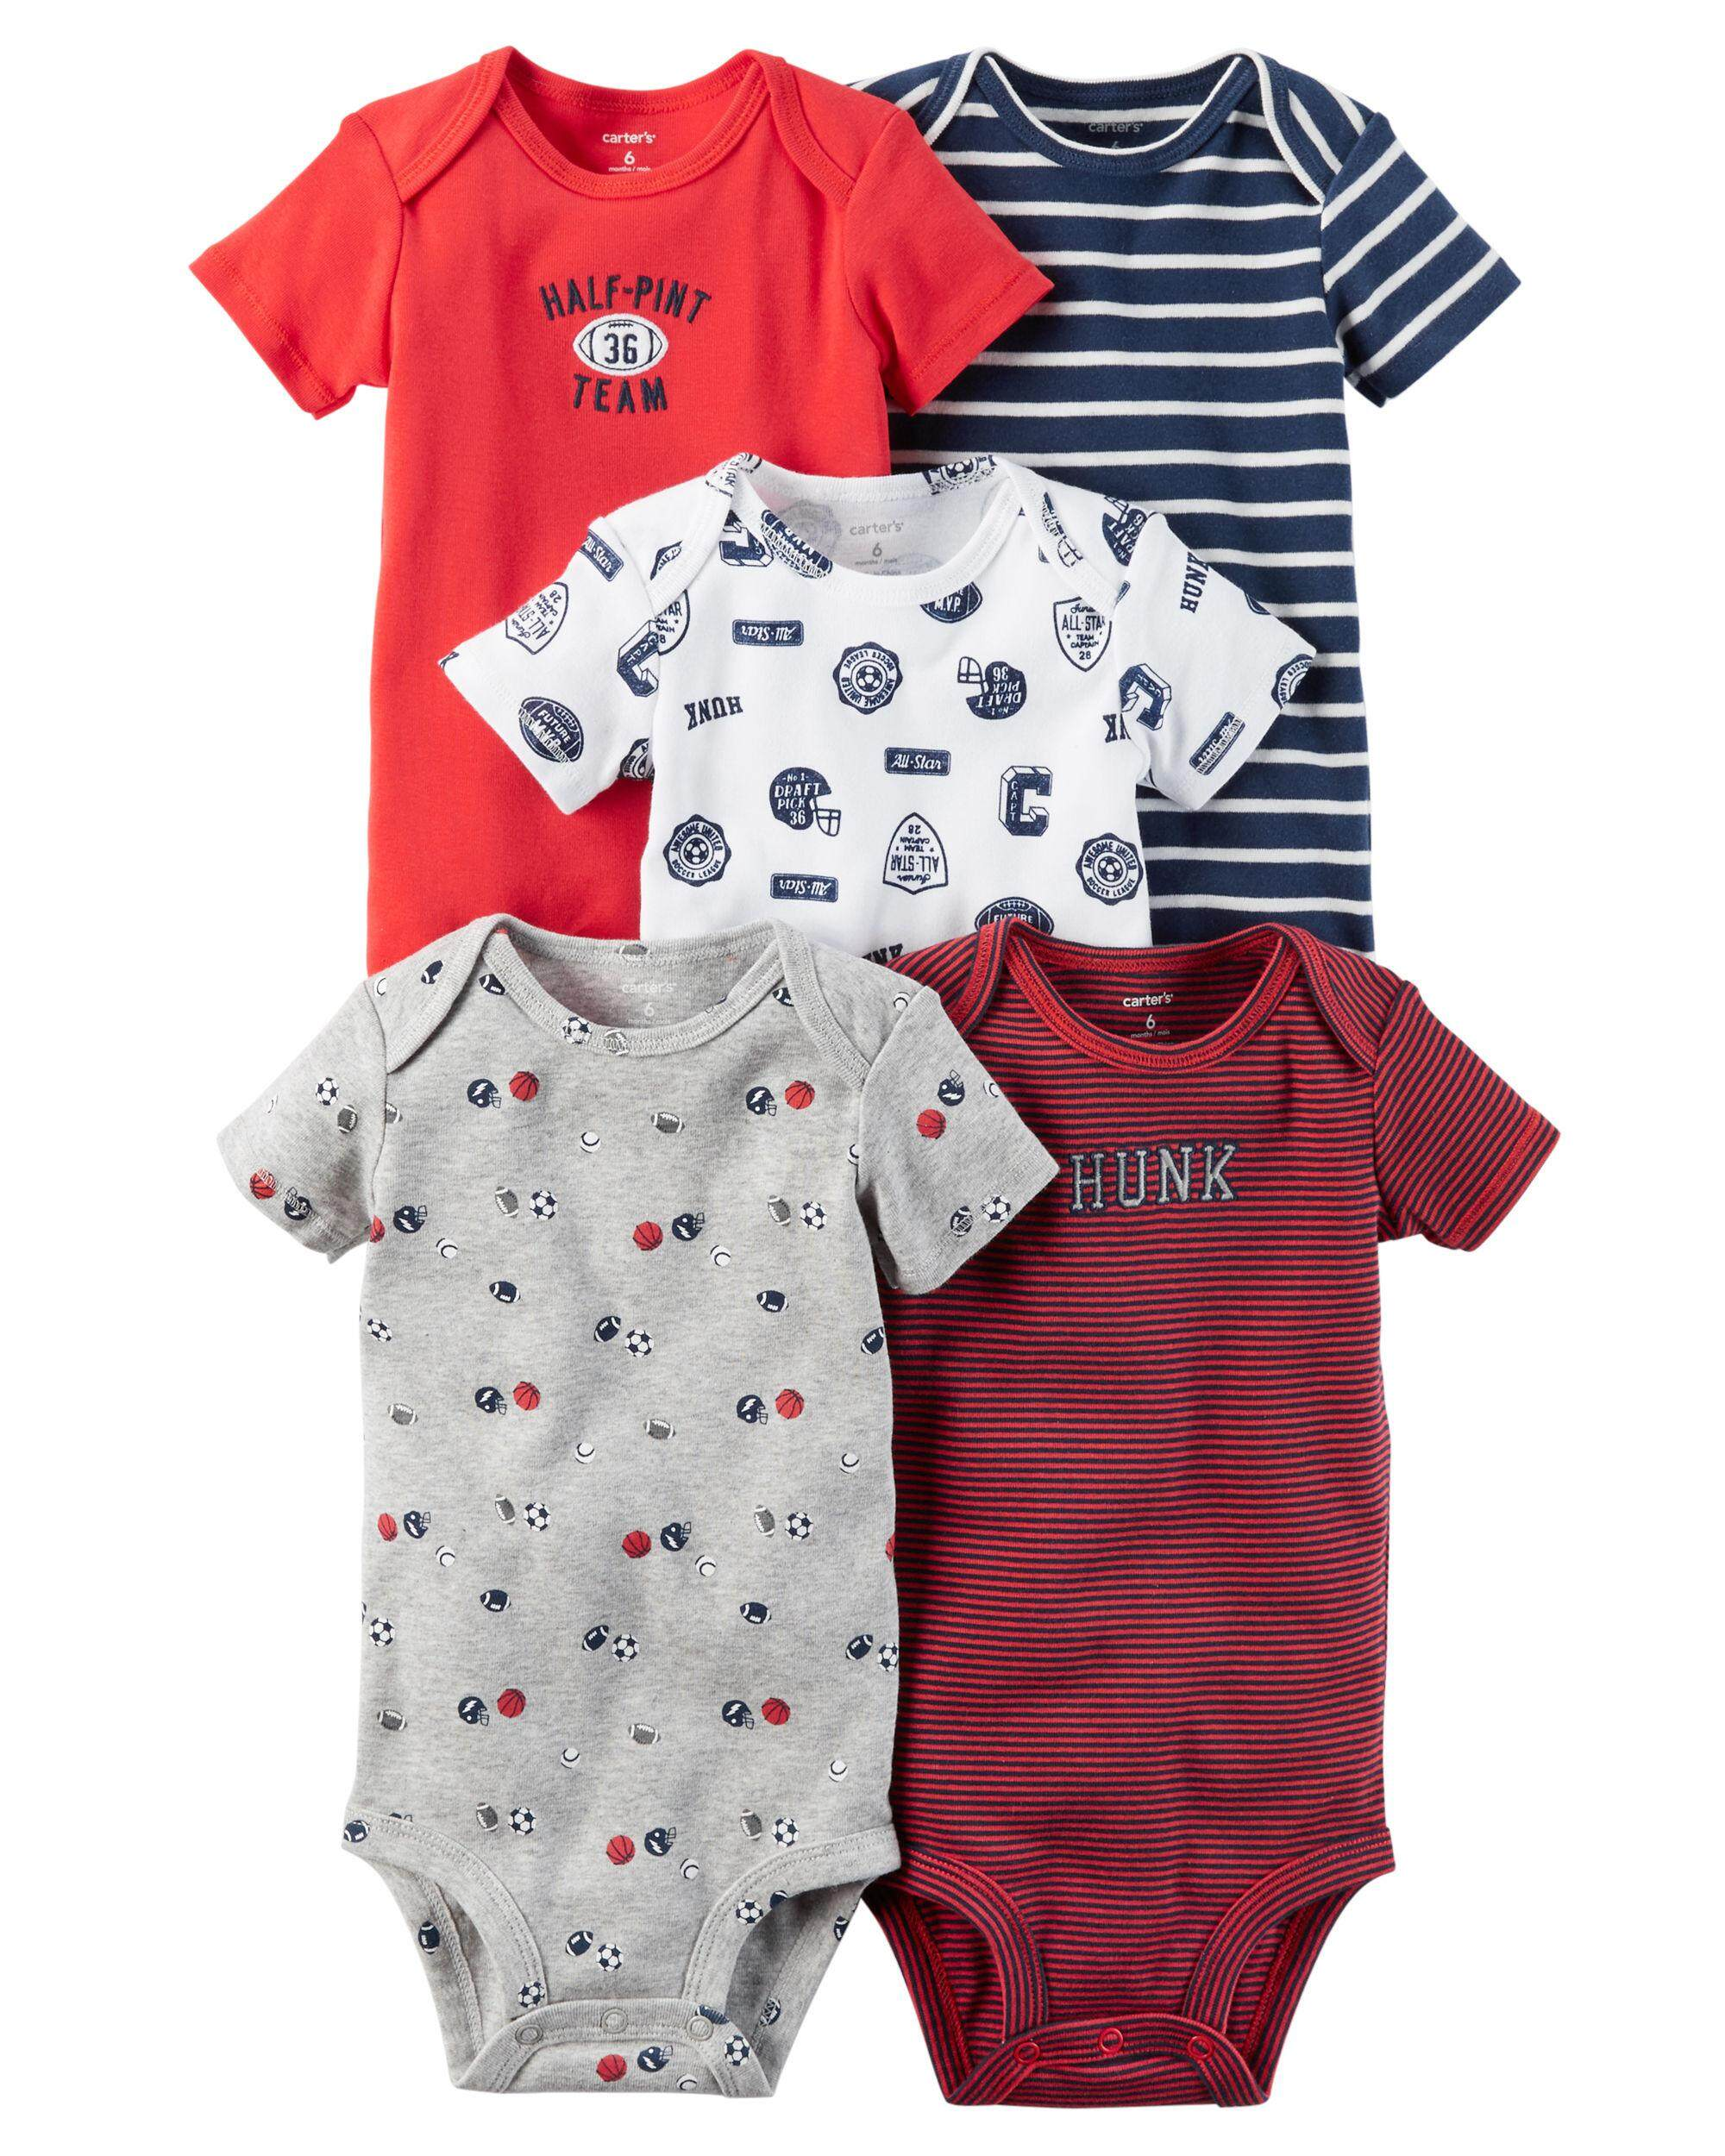 f56fa84f0 Carter's Baby Romper Random design Short sleeves rompers baju bayi (5 pcs  in 1 pack